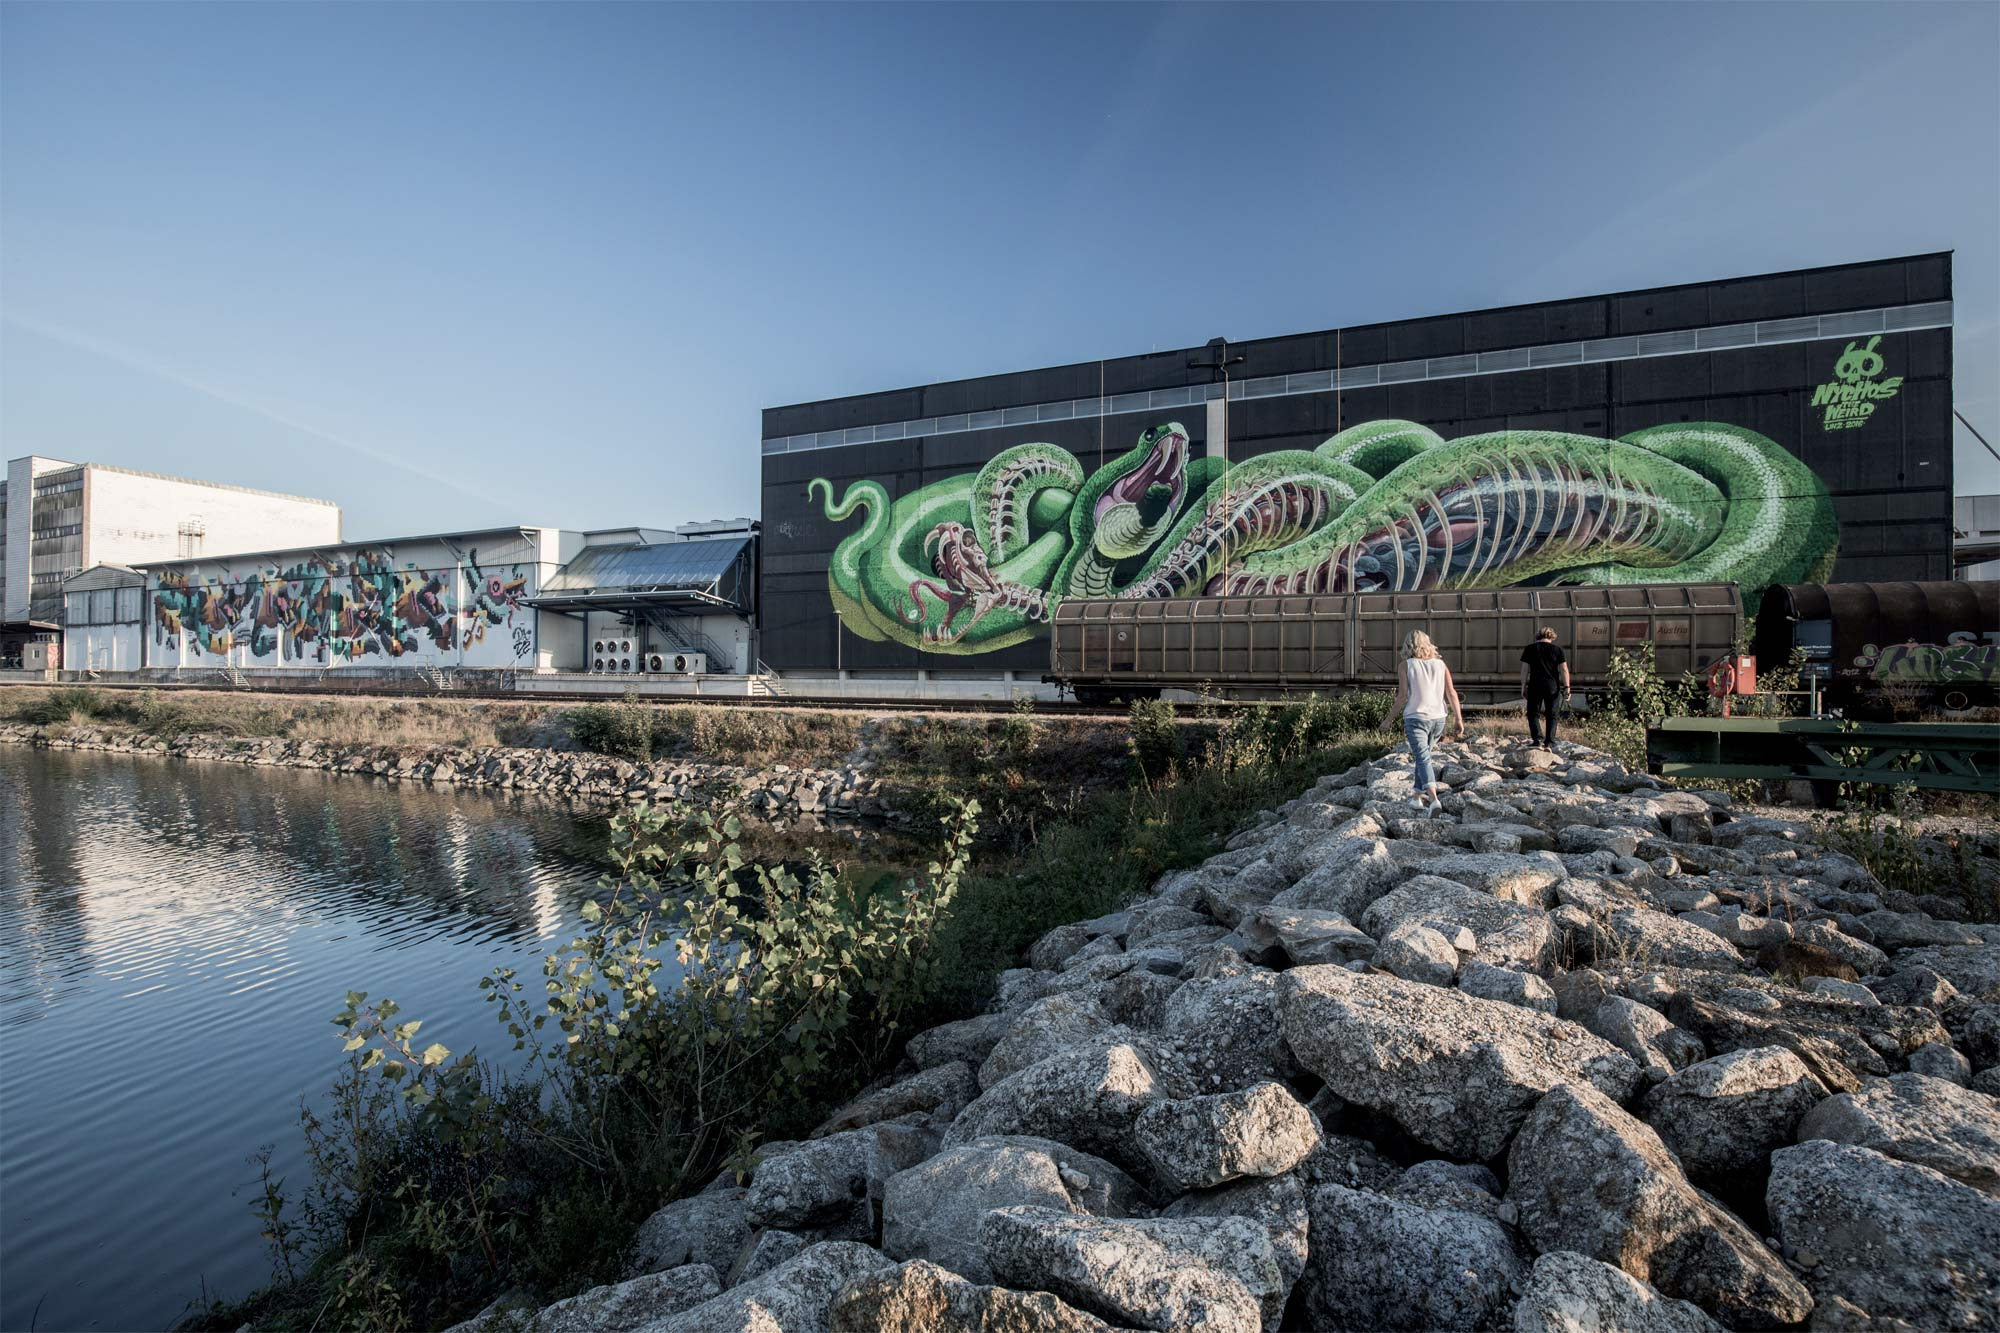 Linz Mural Harbour Titel c OOe Tourismus Robert Maybach